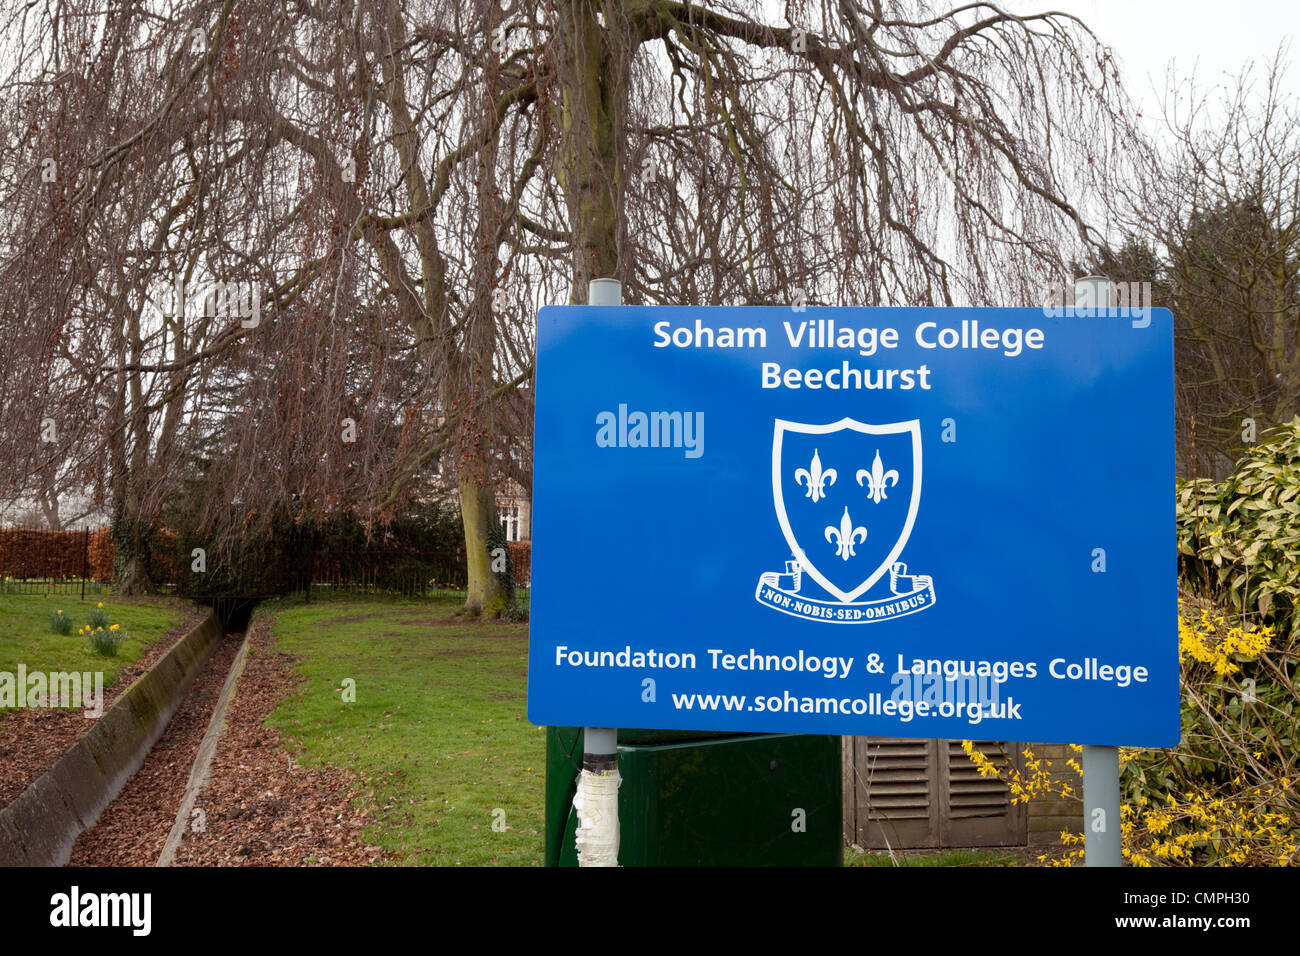 Beechurst entrance sign, Soham Village College Secondary school, Soham Cambridgeshire UK - Stock Image